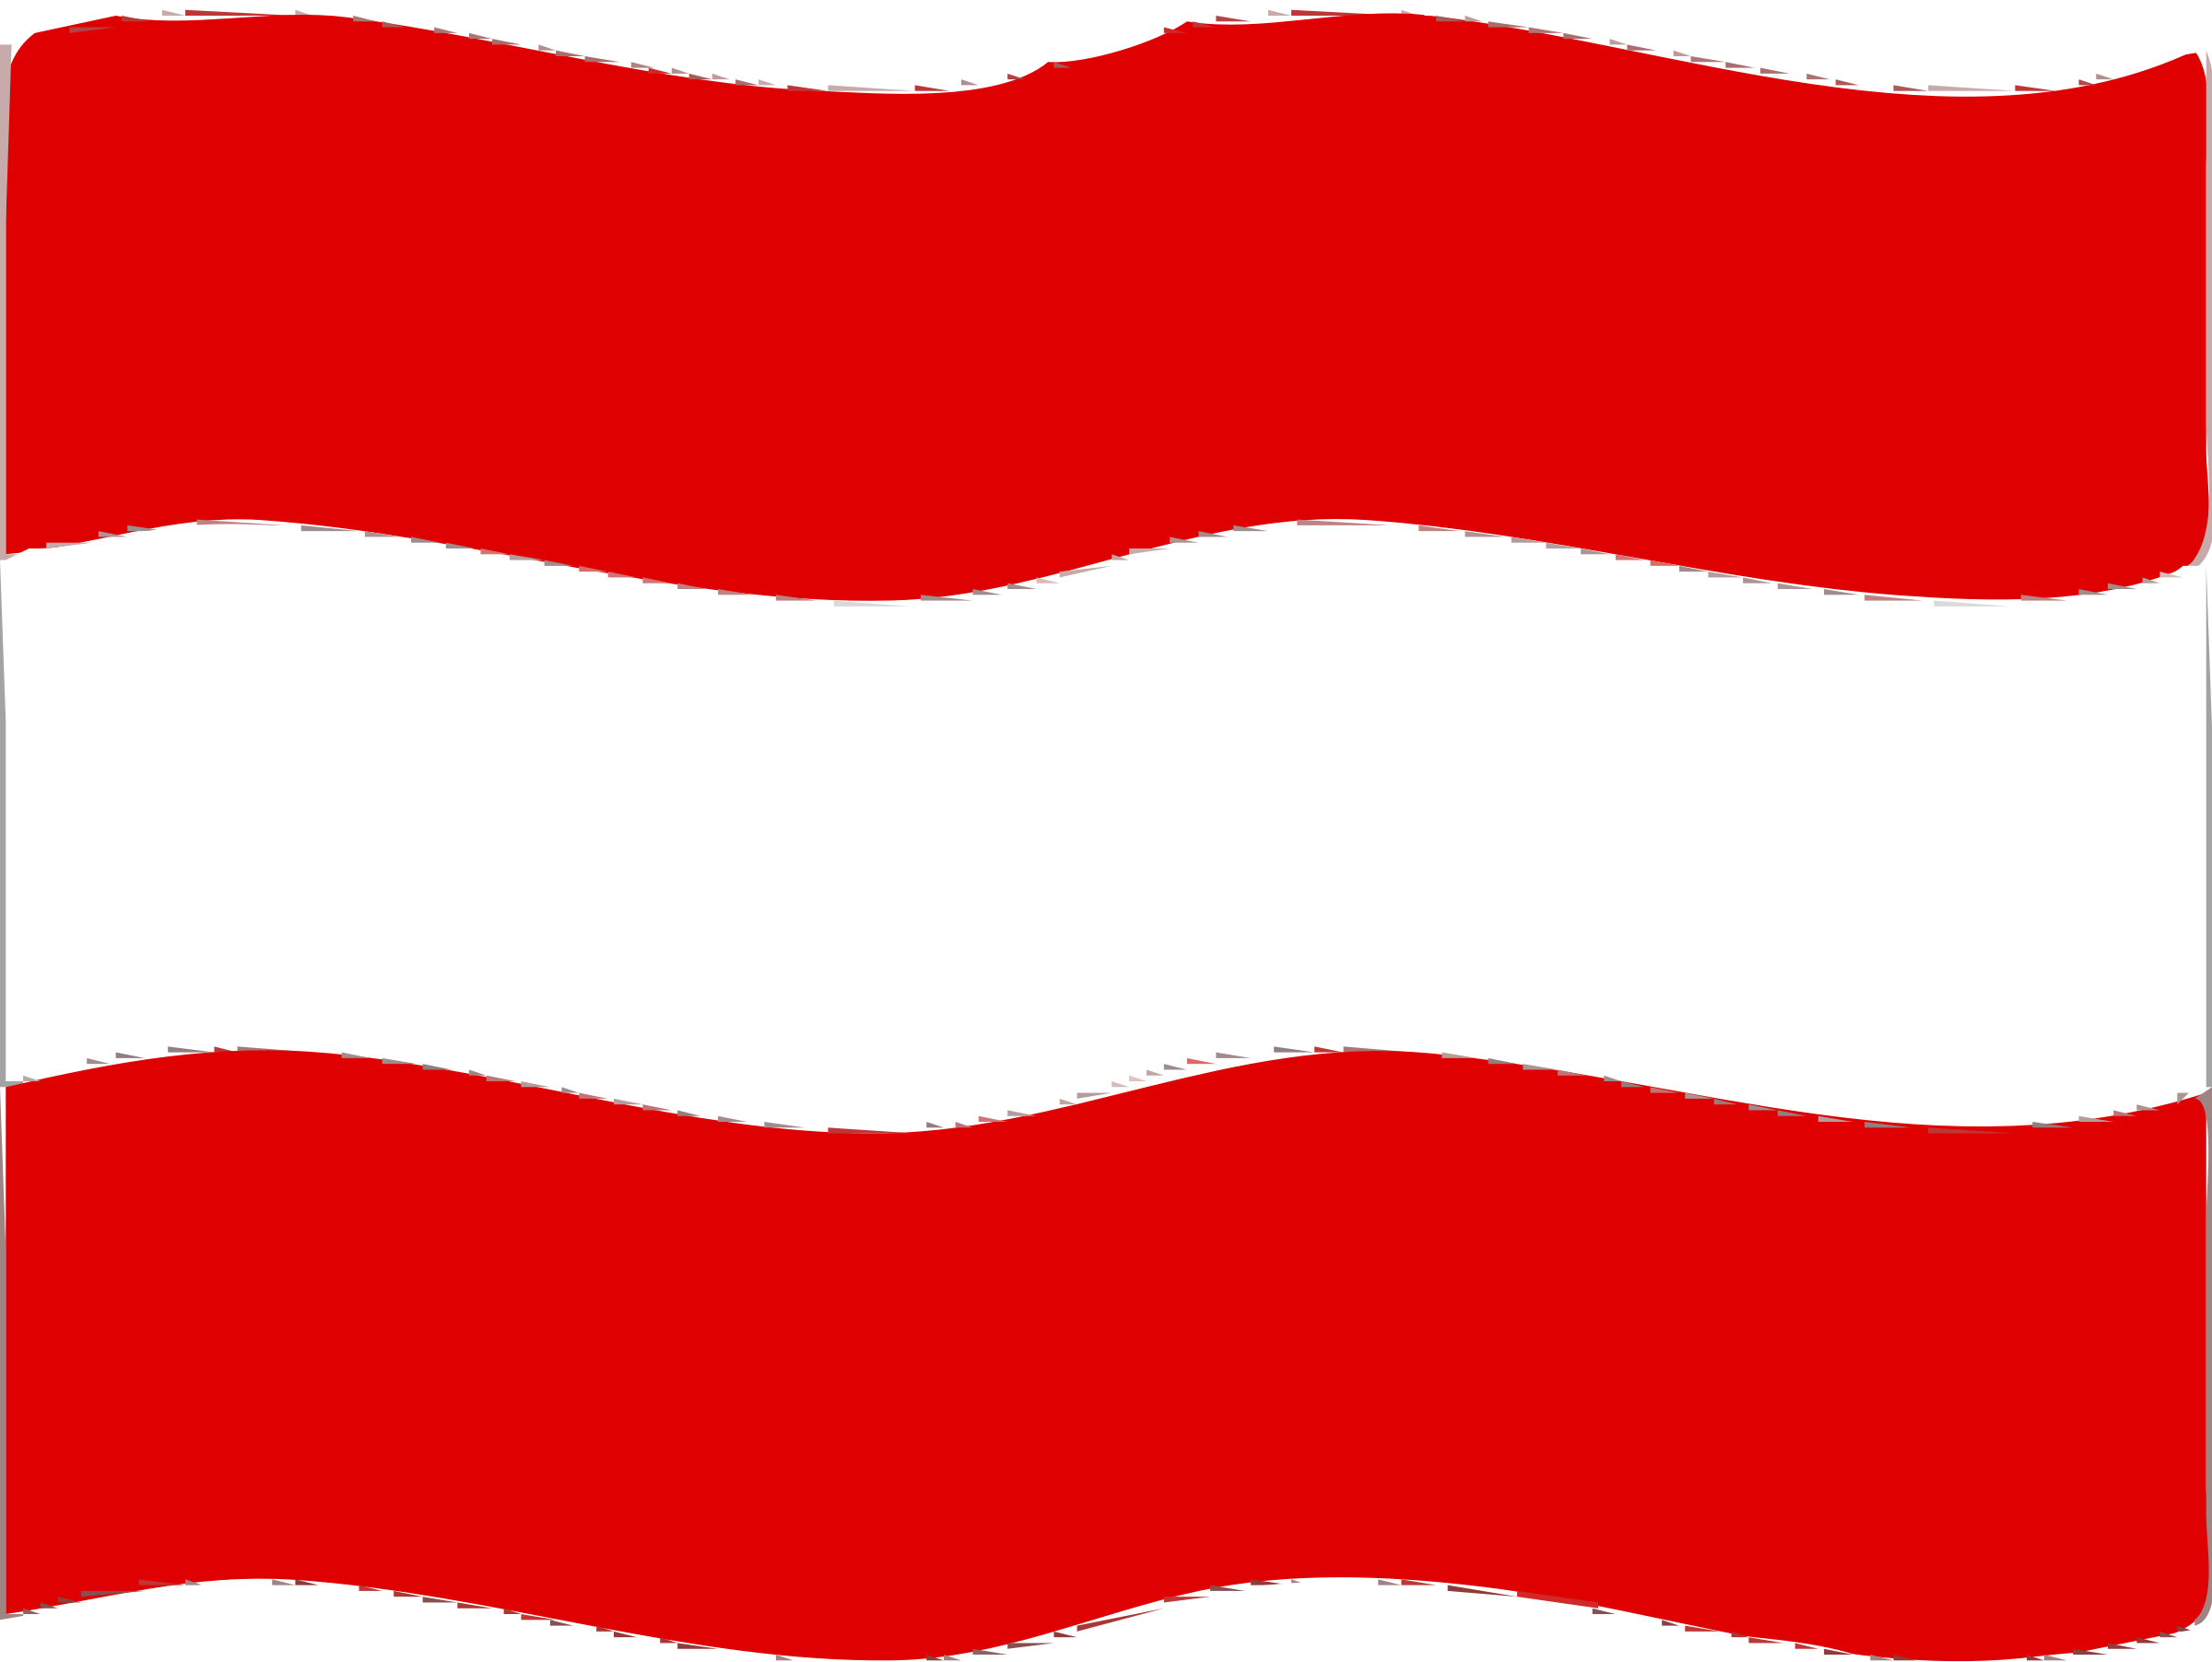 Flag of Austria wave by Joesph